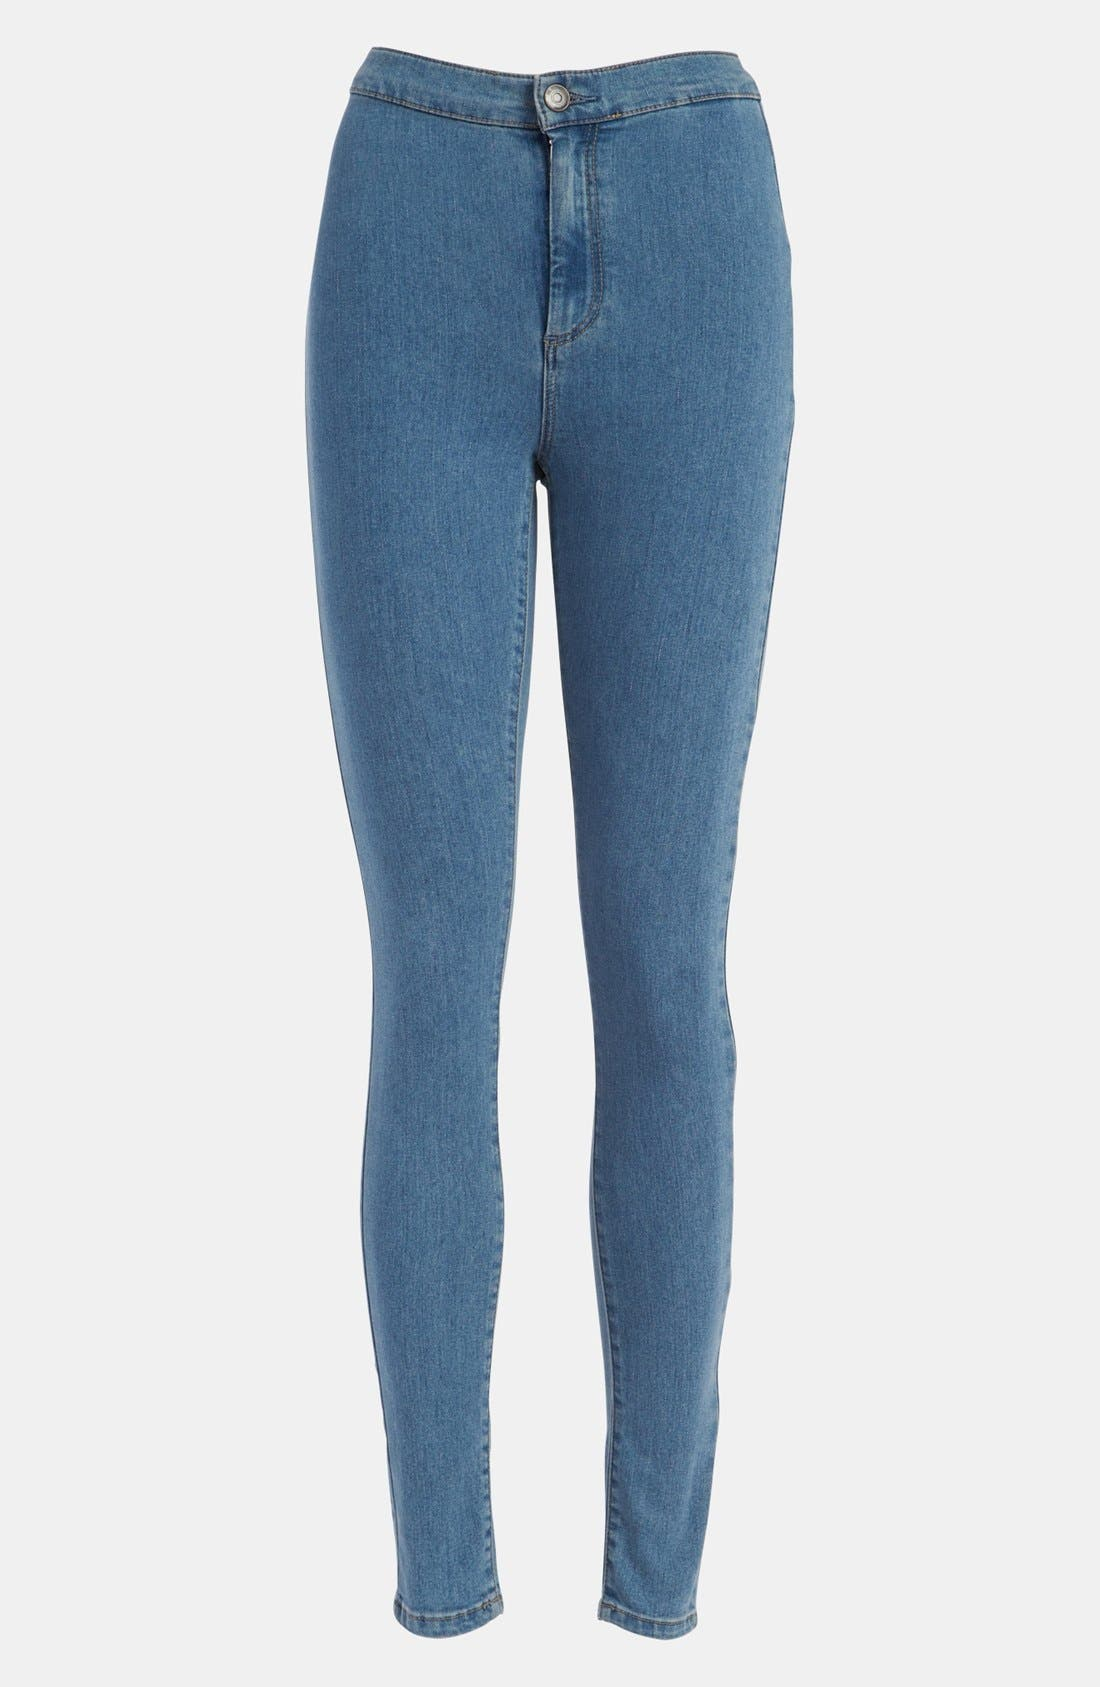 Alternate Image 1 Selected - Topshop Moto 'Joni Disco' High Waisted Jeans